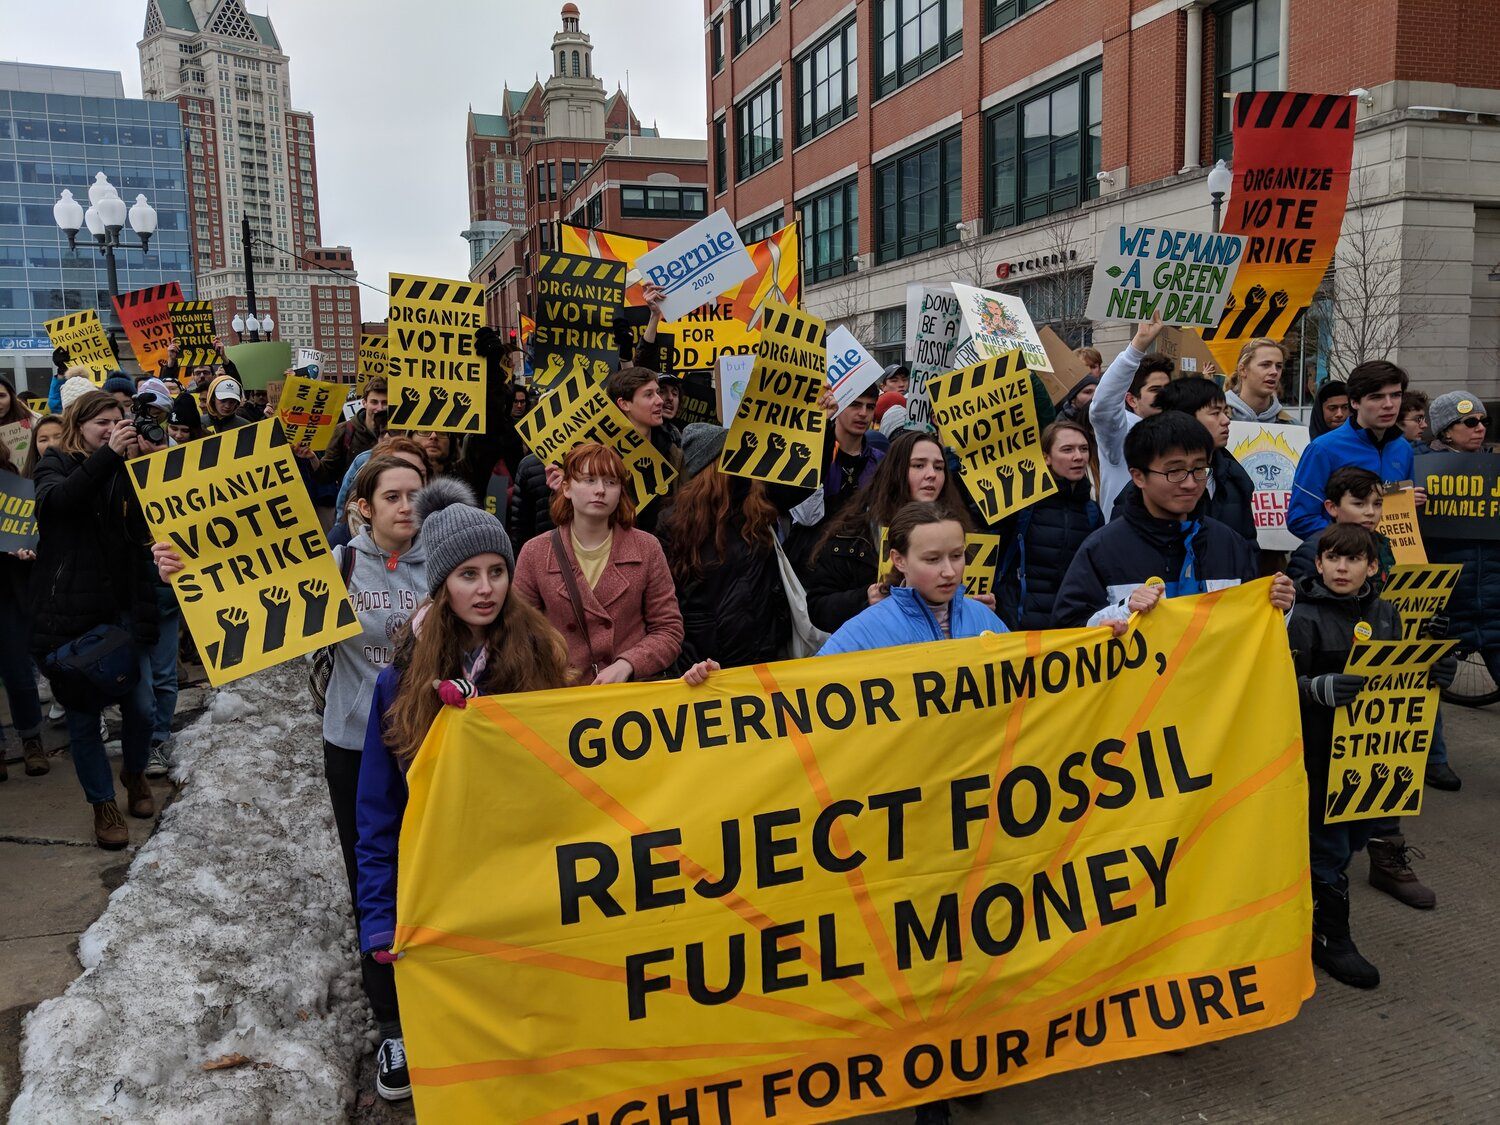 About 500 protesters joined the Dec. 6 Climate Strike in Providence. (Tim Faulkner/ecoRI News photos)